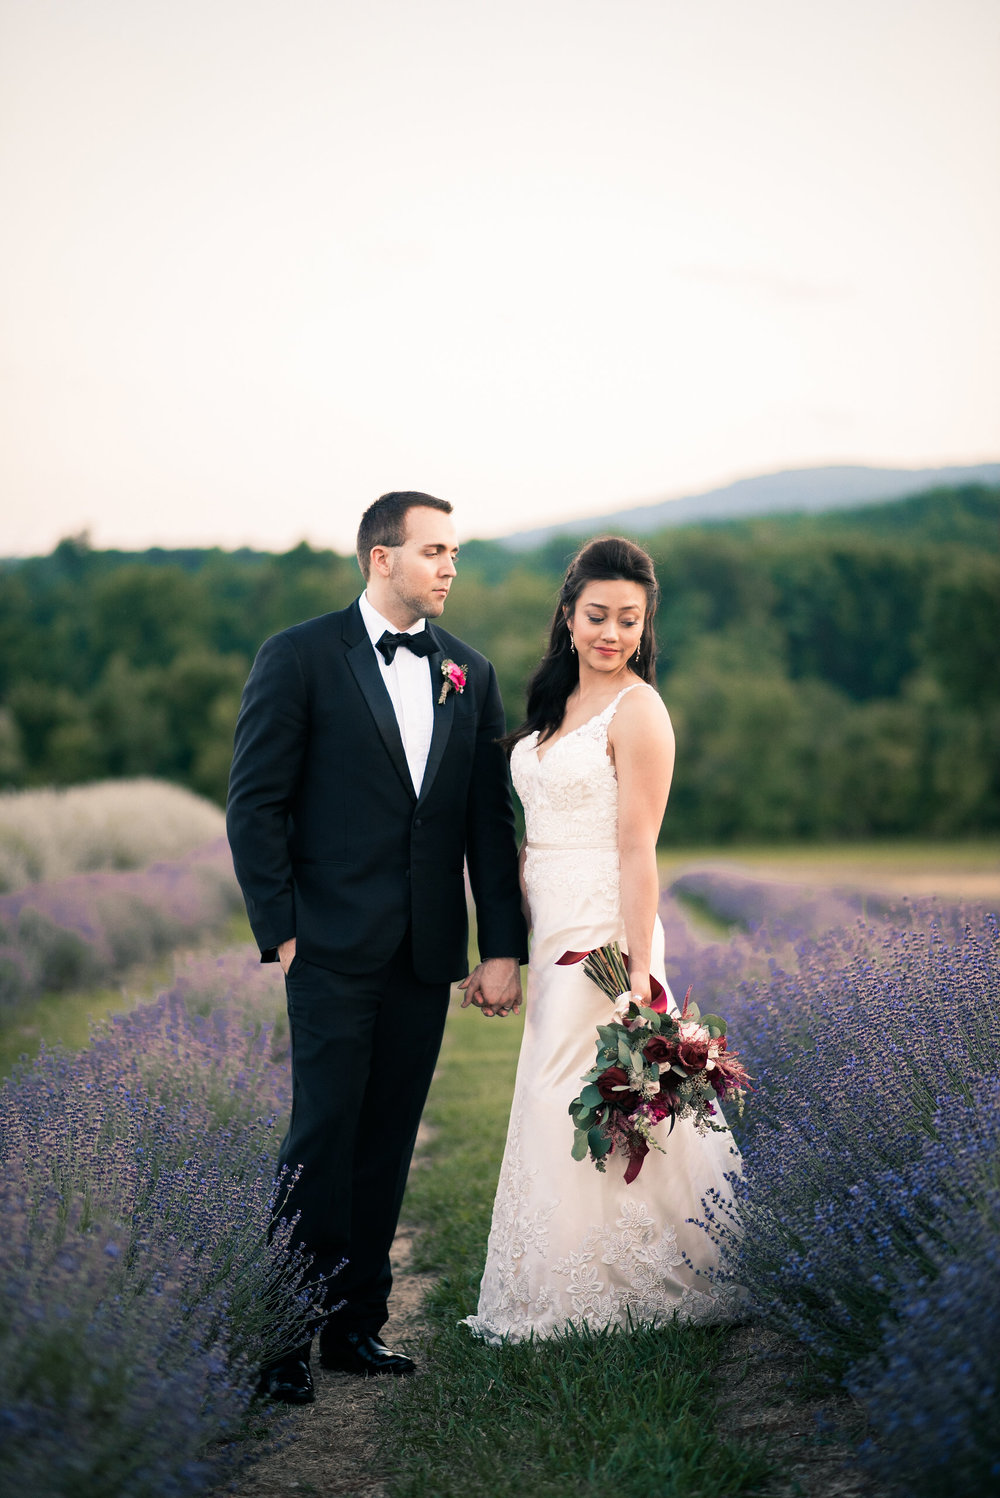 Groom looking at bride in lavender field